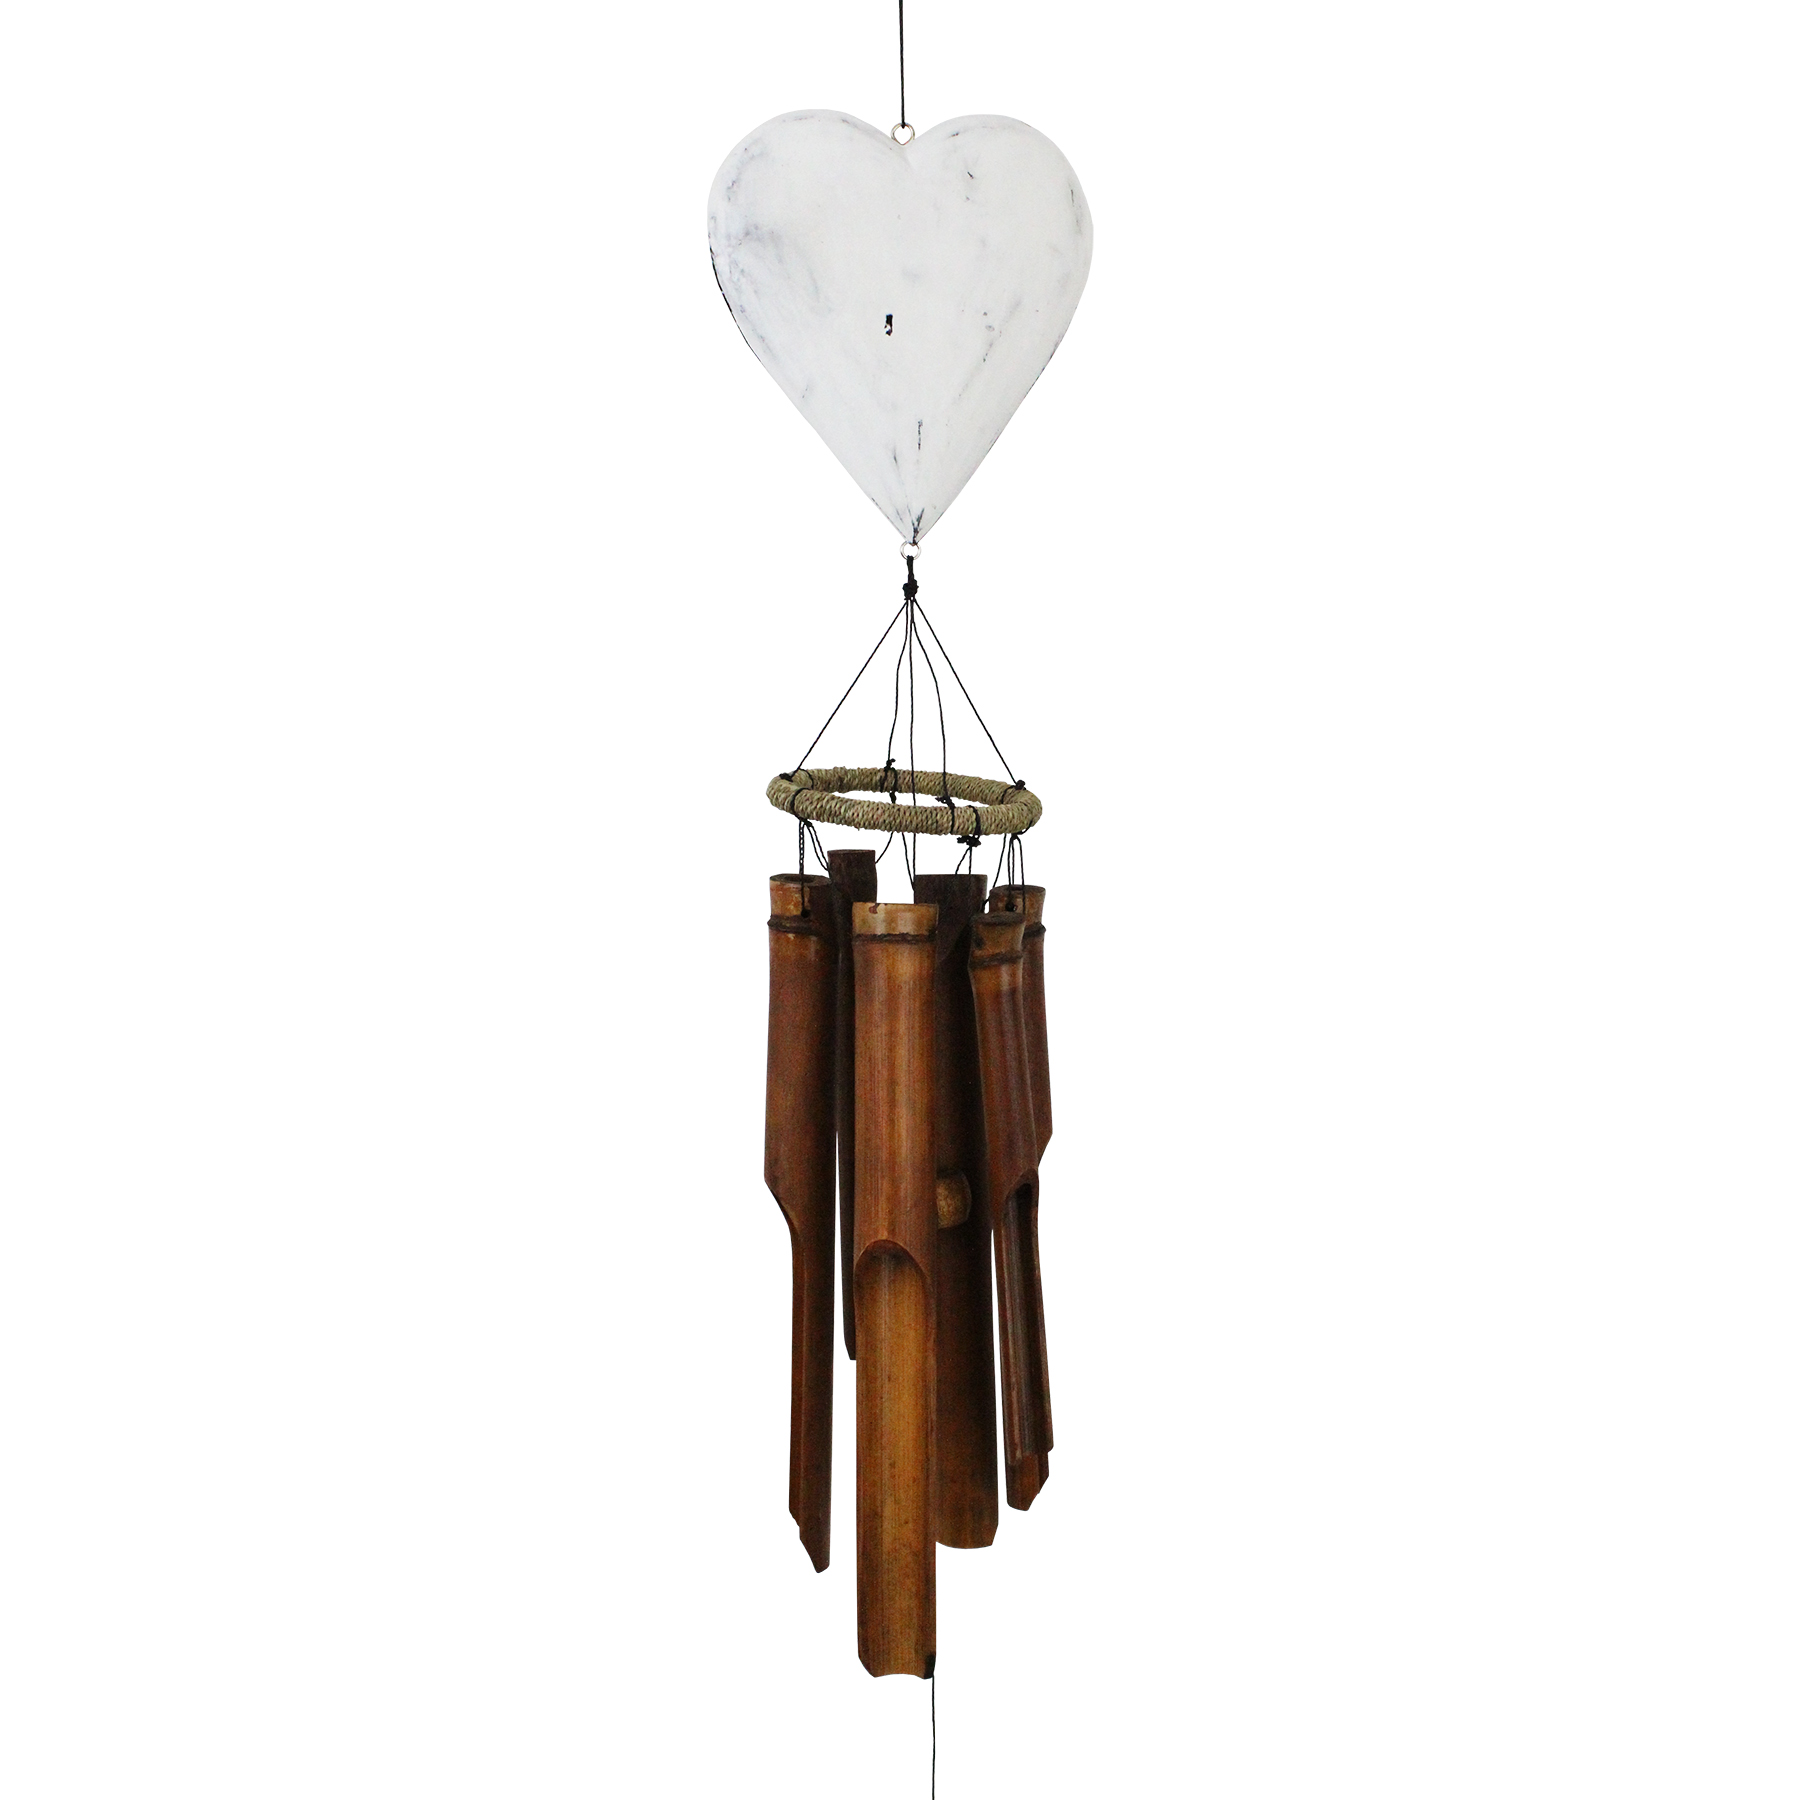 183H - Heart Bamboo Wind Chime